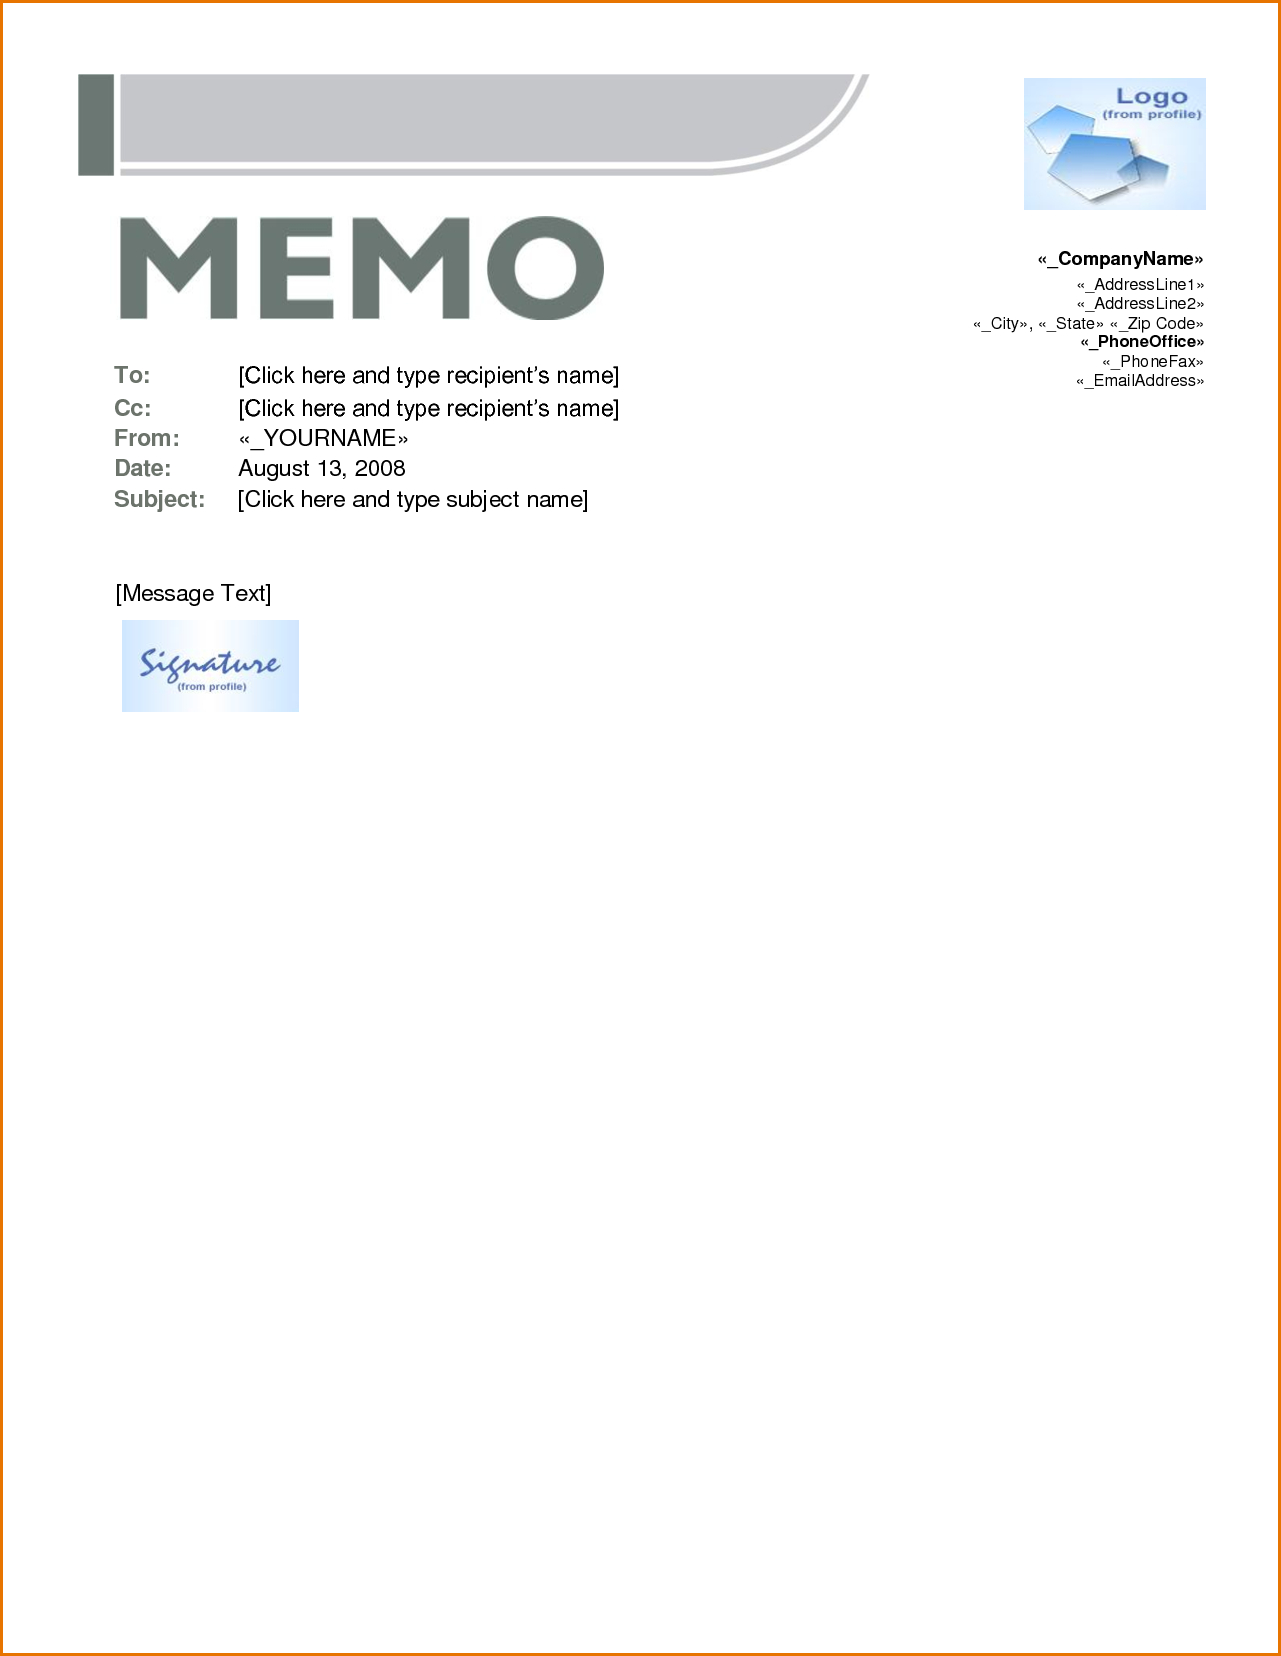 Memo Template Word Zndbrm Templates For Shocking Ideas With Regard To Memo Template Word 2013